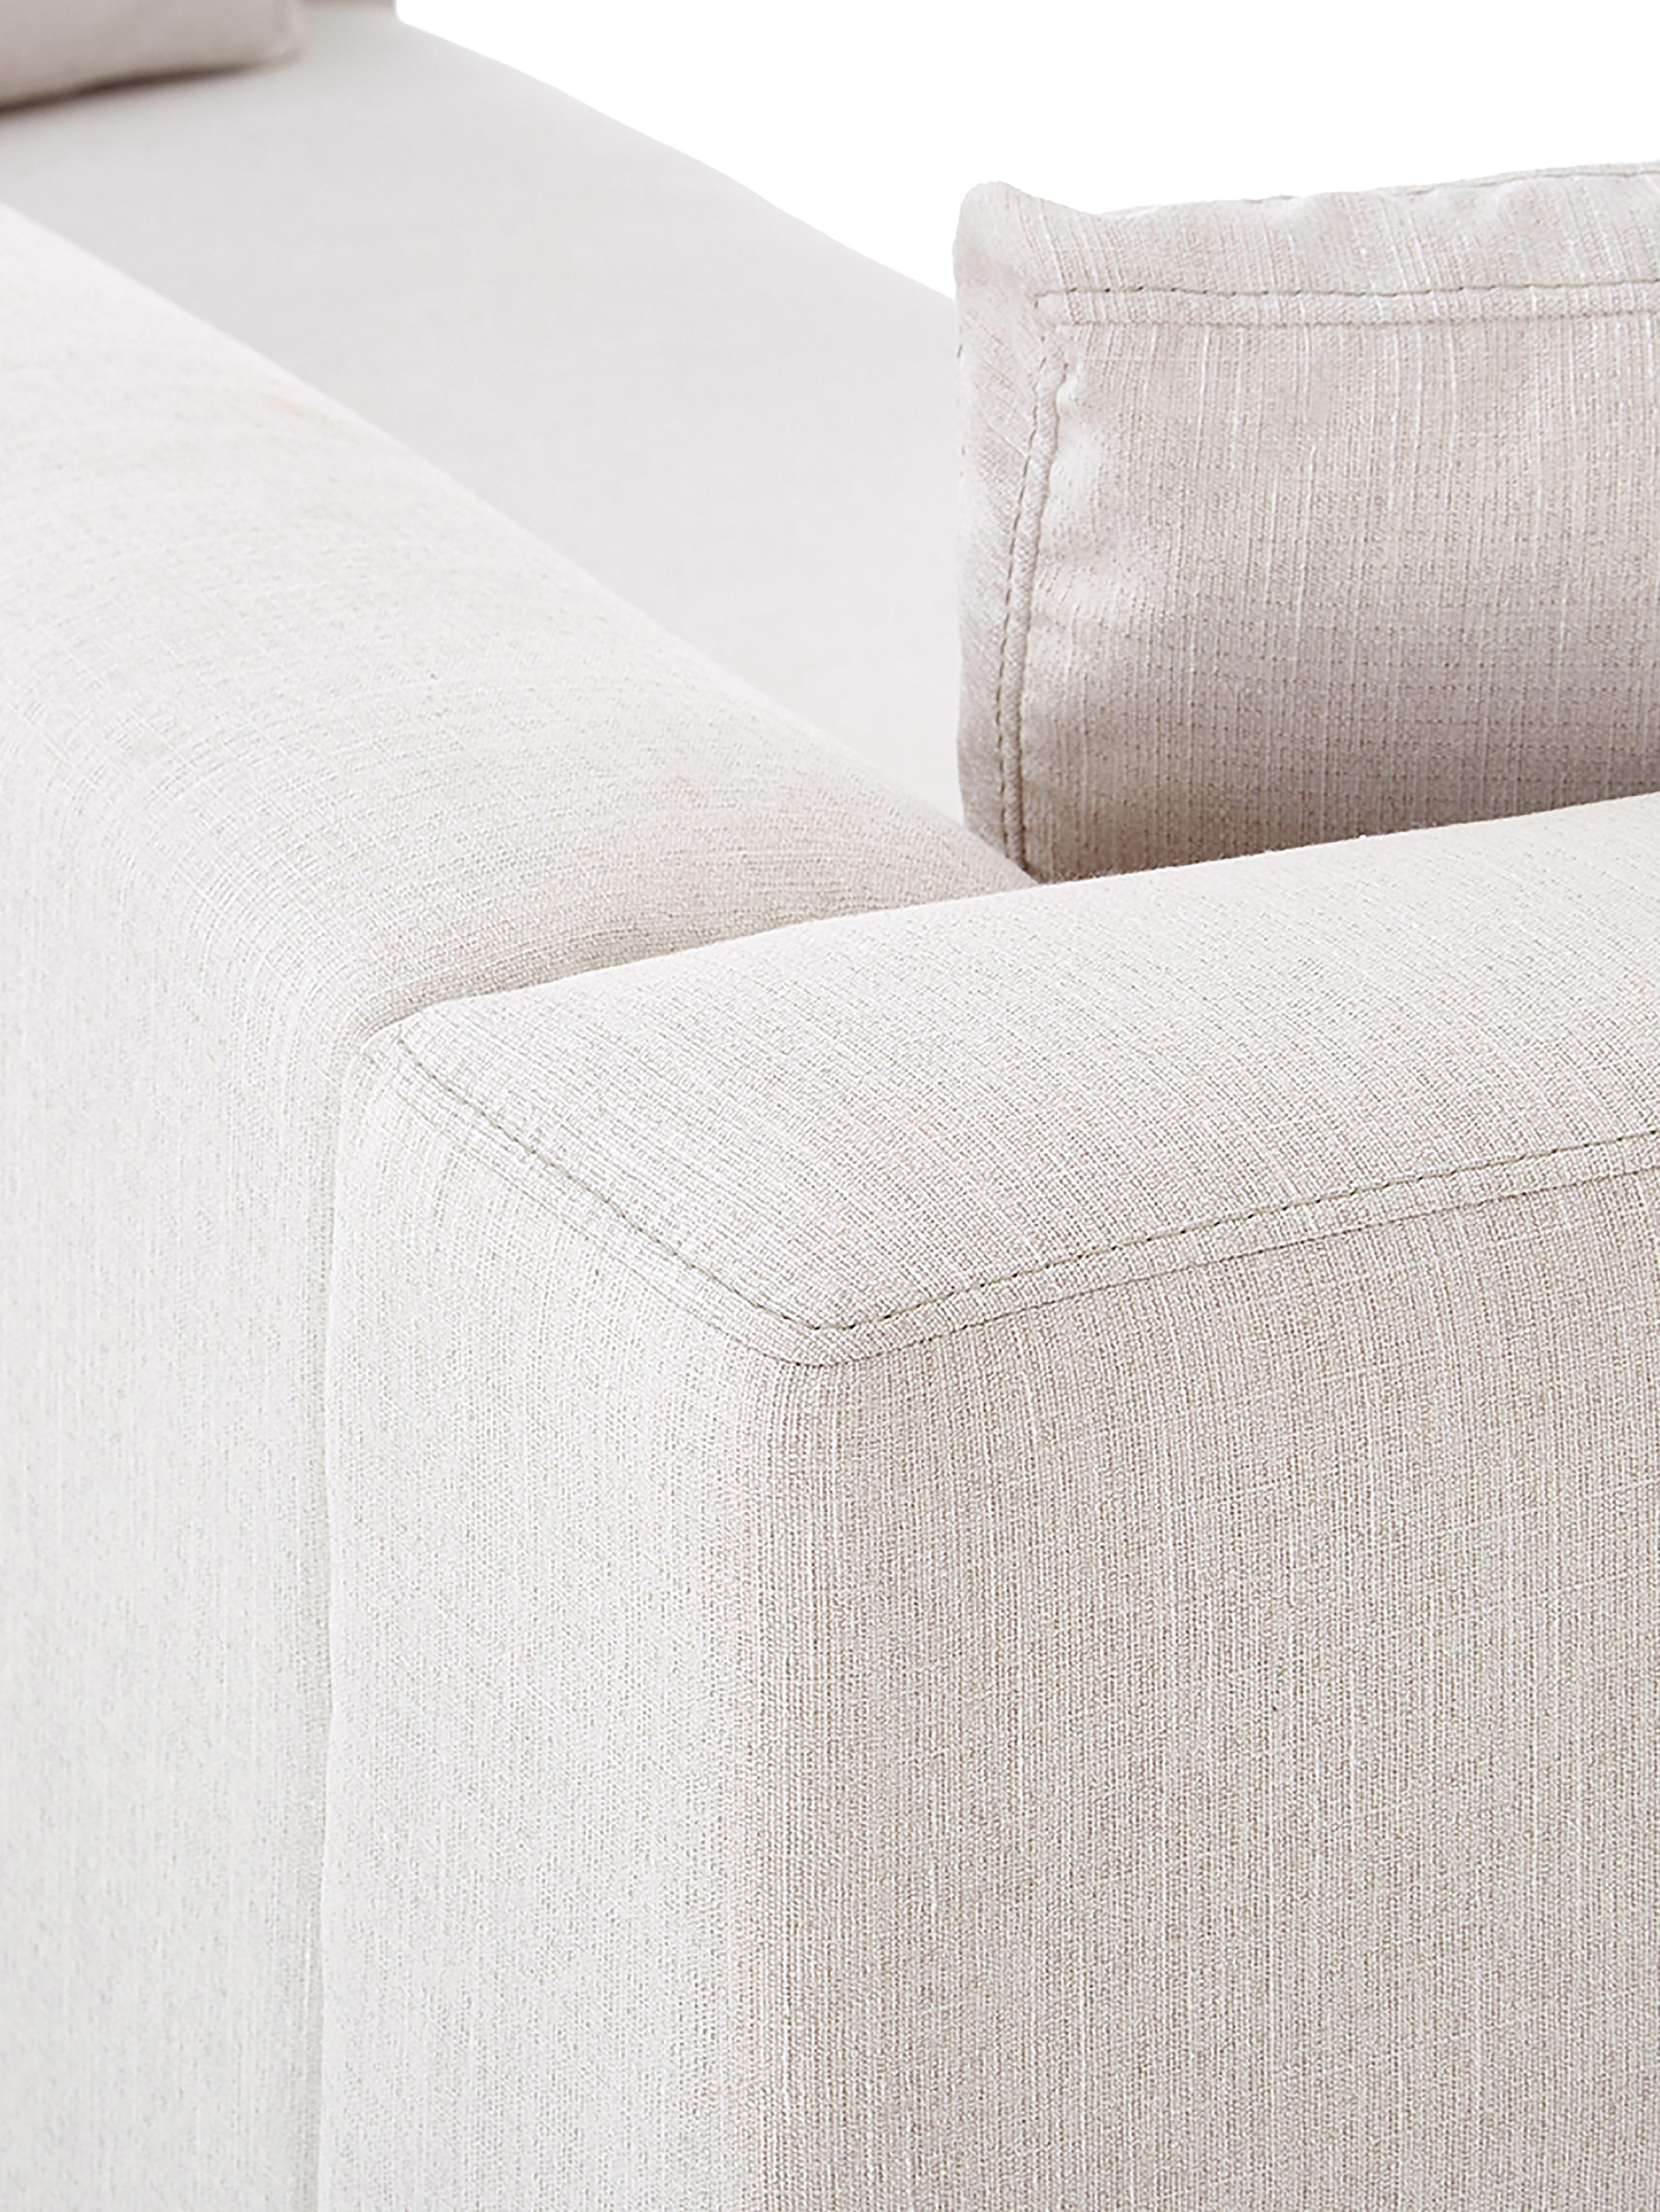 Canapé d'angle beige Carrie, Tissu beige